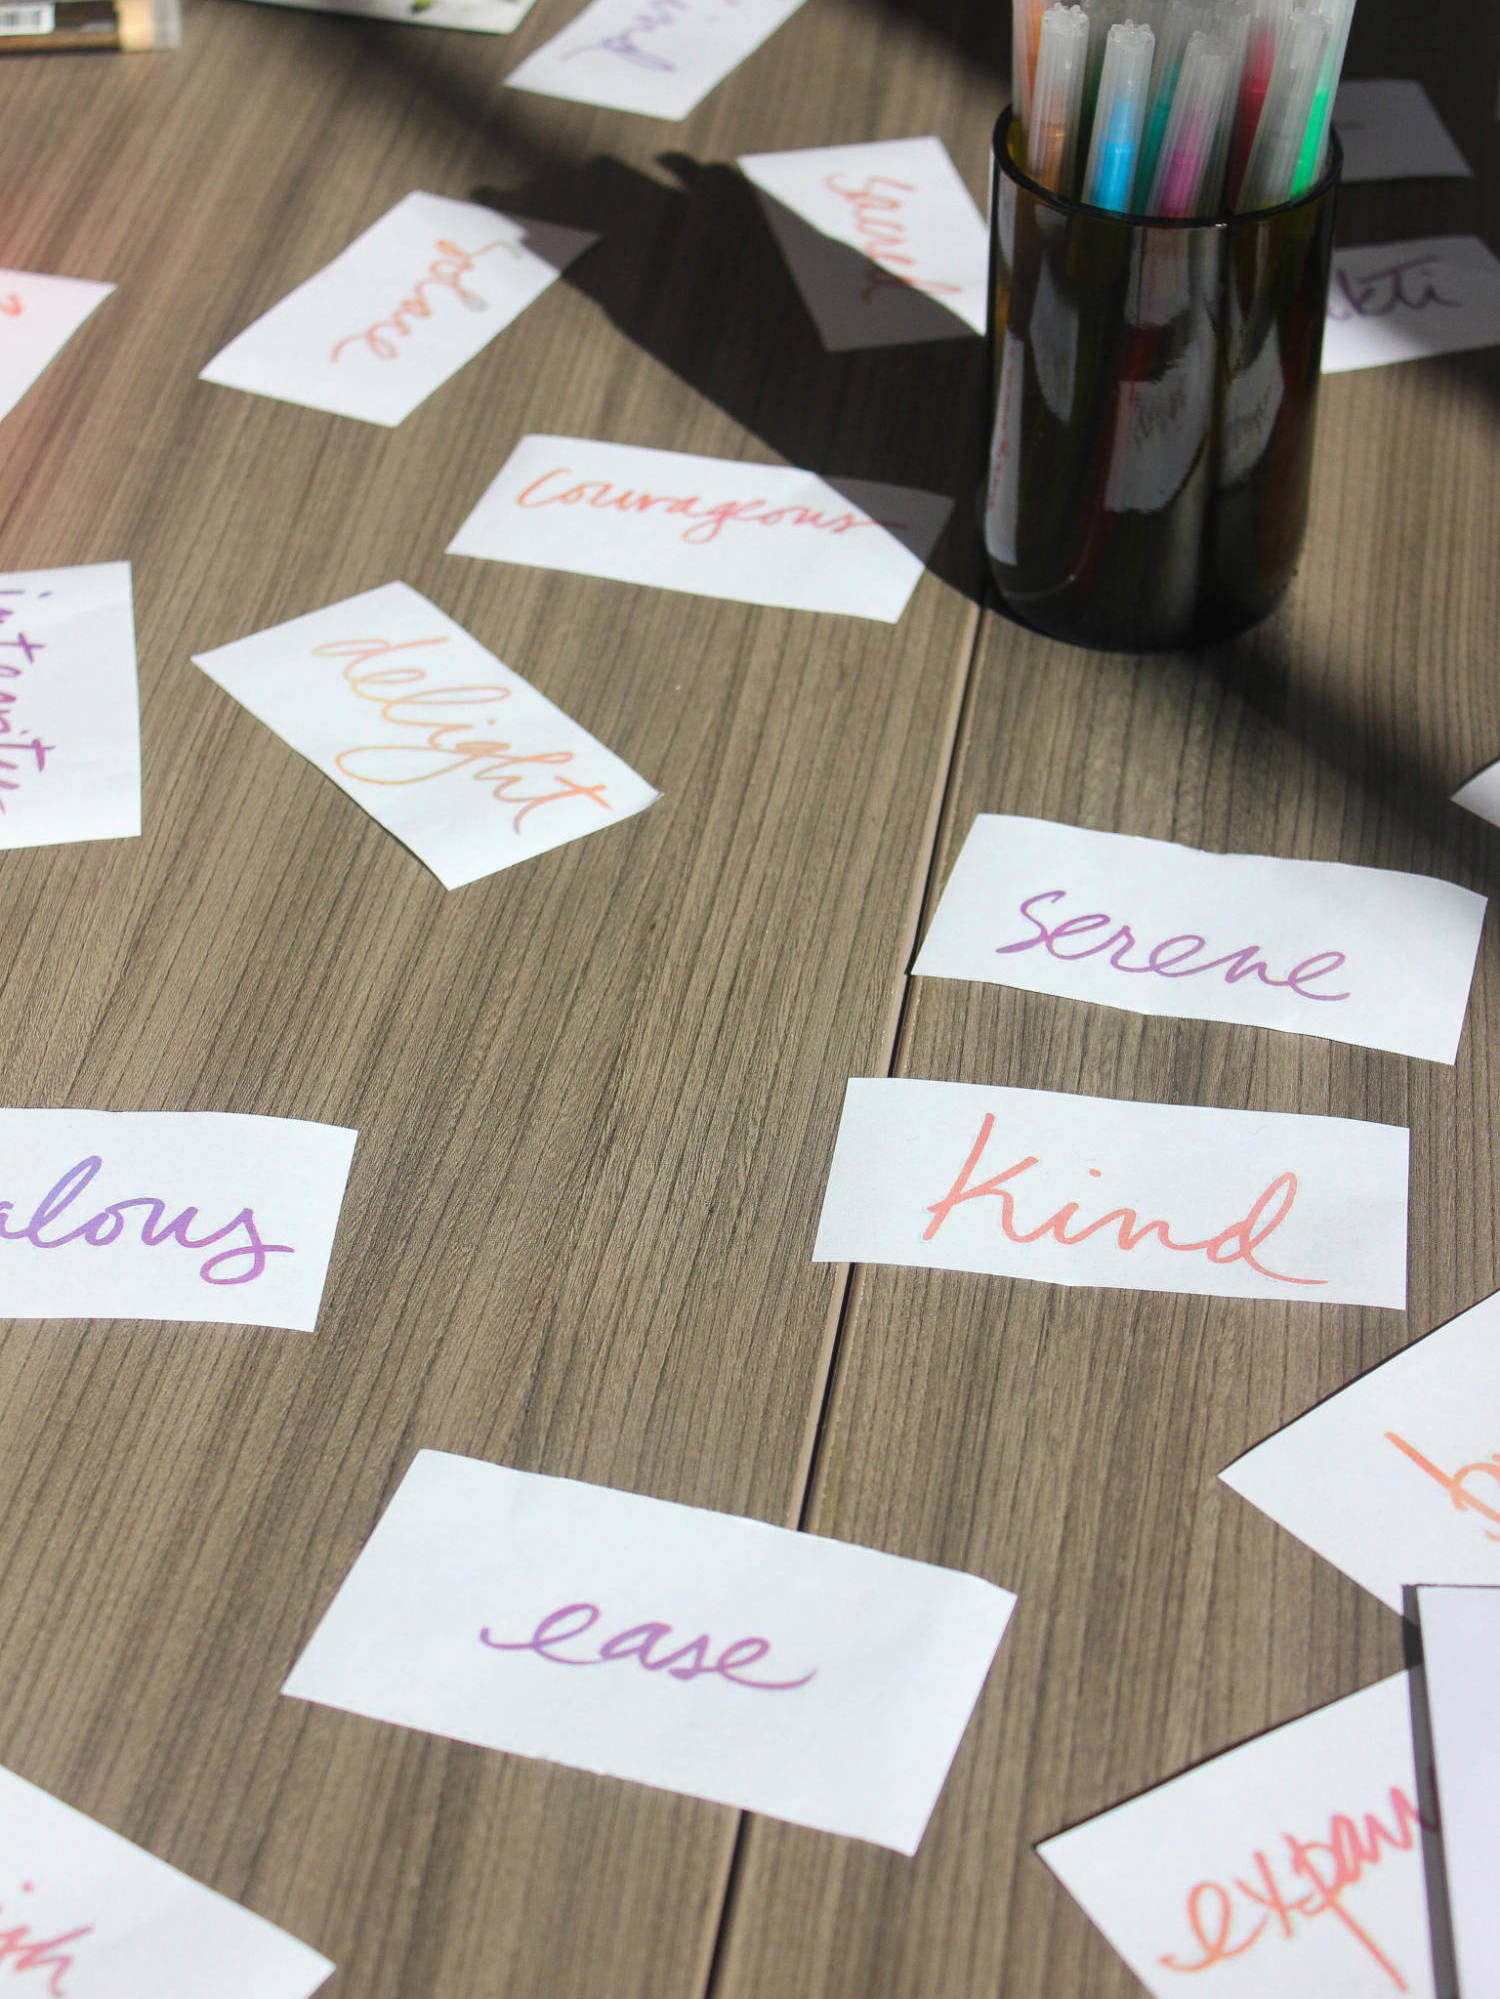 Positive feelings scattered on the table at the  Inspired and Intentional  urban retreat. Photo by  Stephanie E. Chung , 19 August 2017.